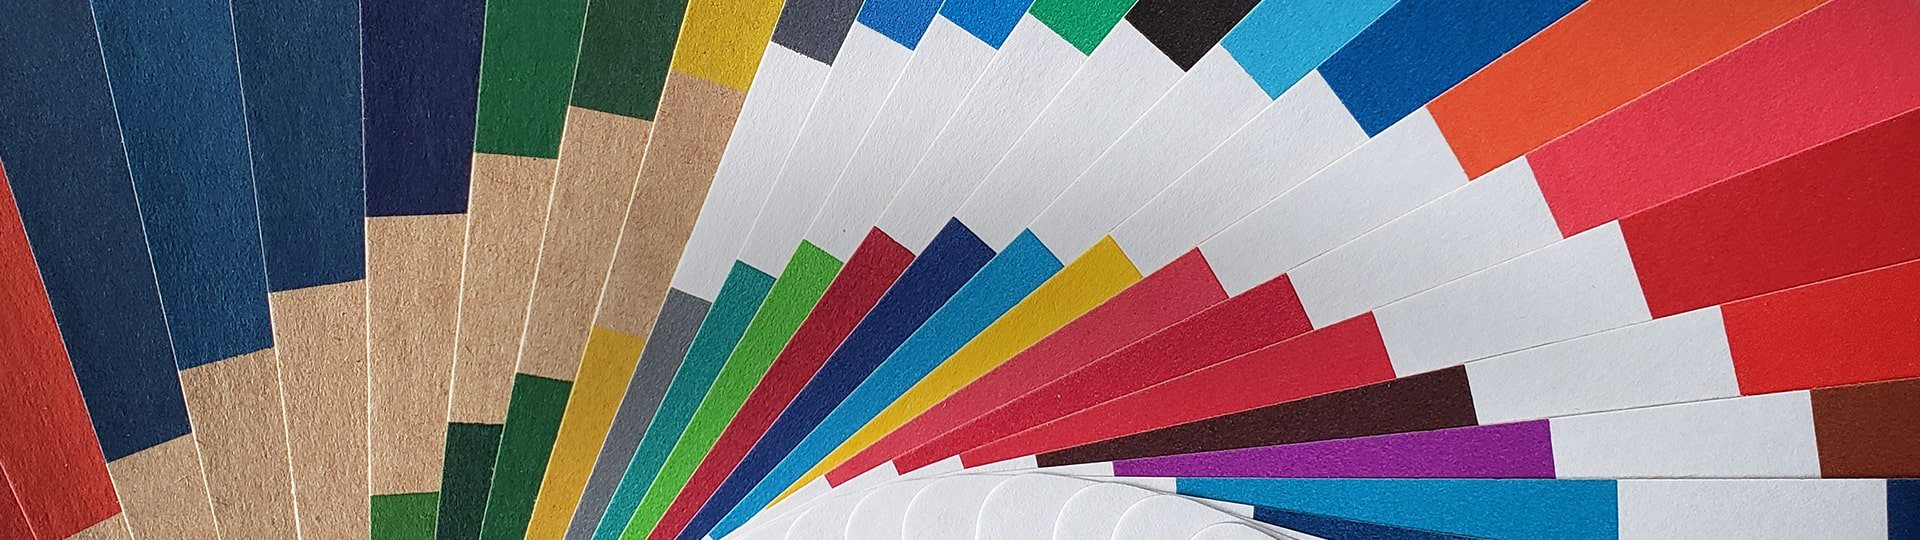 Gcmi Color Guides L American Inks Technology